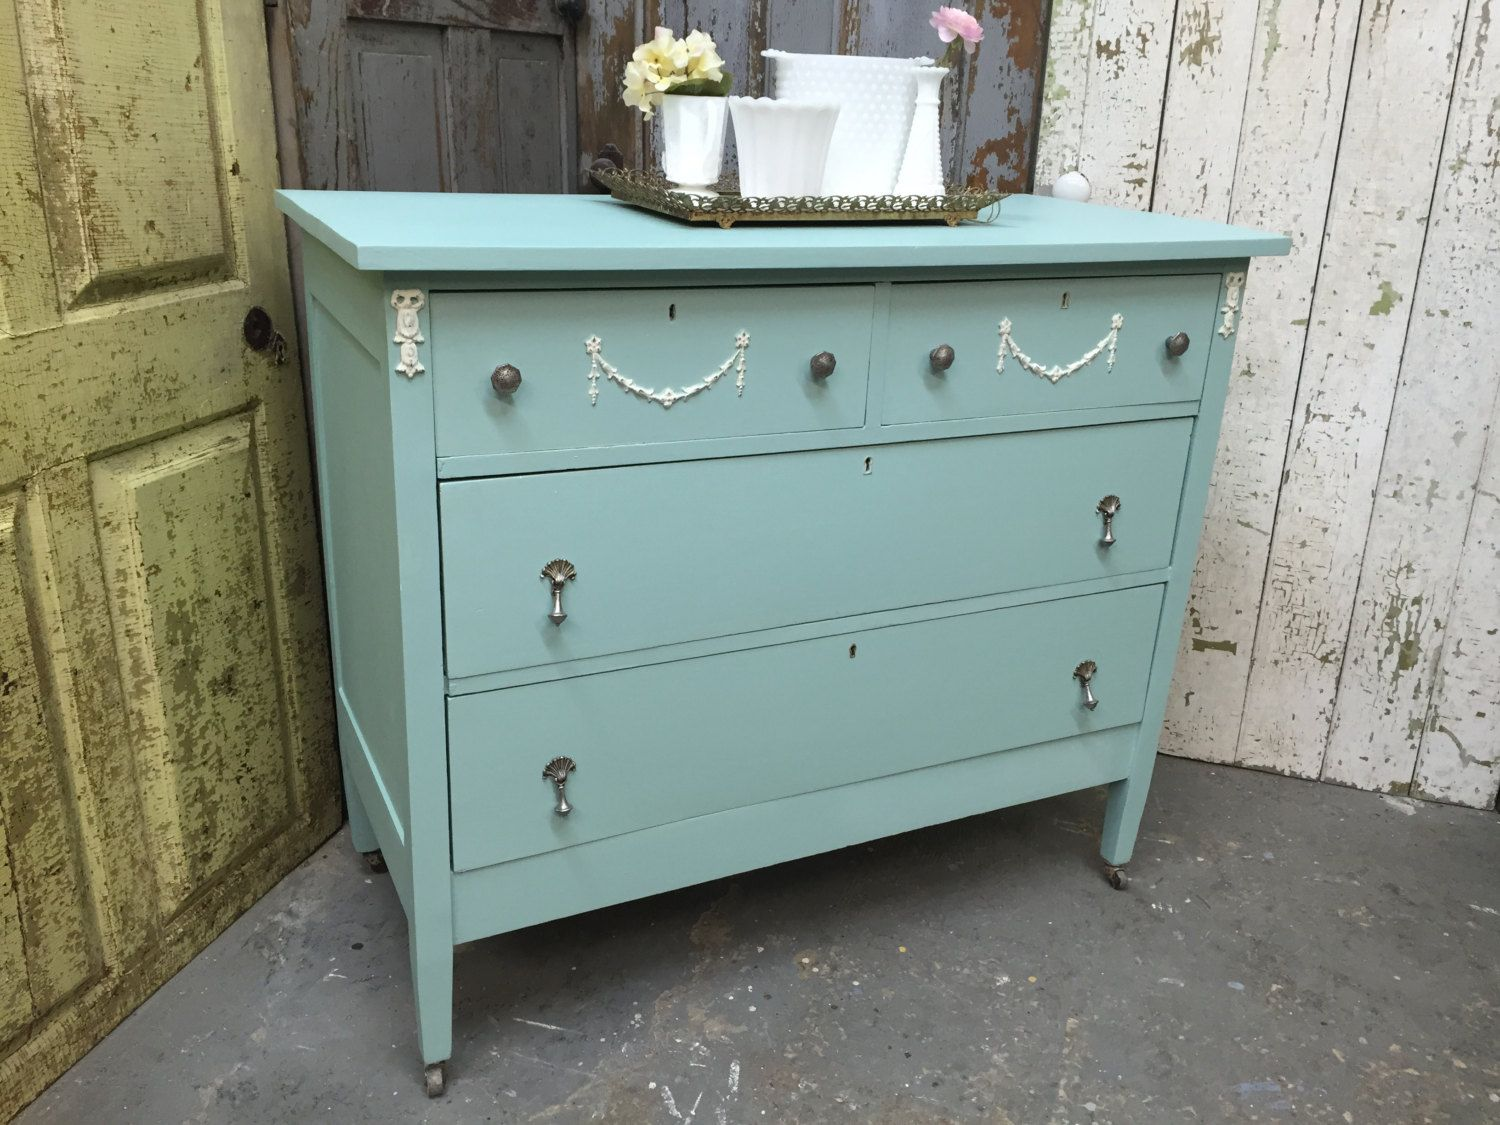 Vintage Chest of Drawers Blue Dresser Green Dresser Shabby Chic Dresser by VintageHipDecor (399.00 USD)